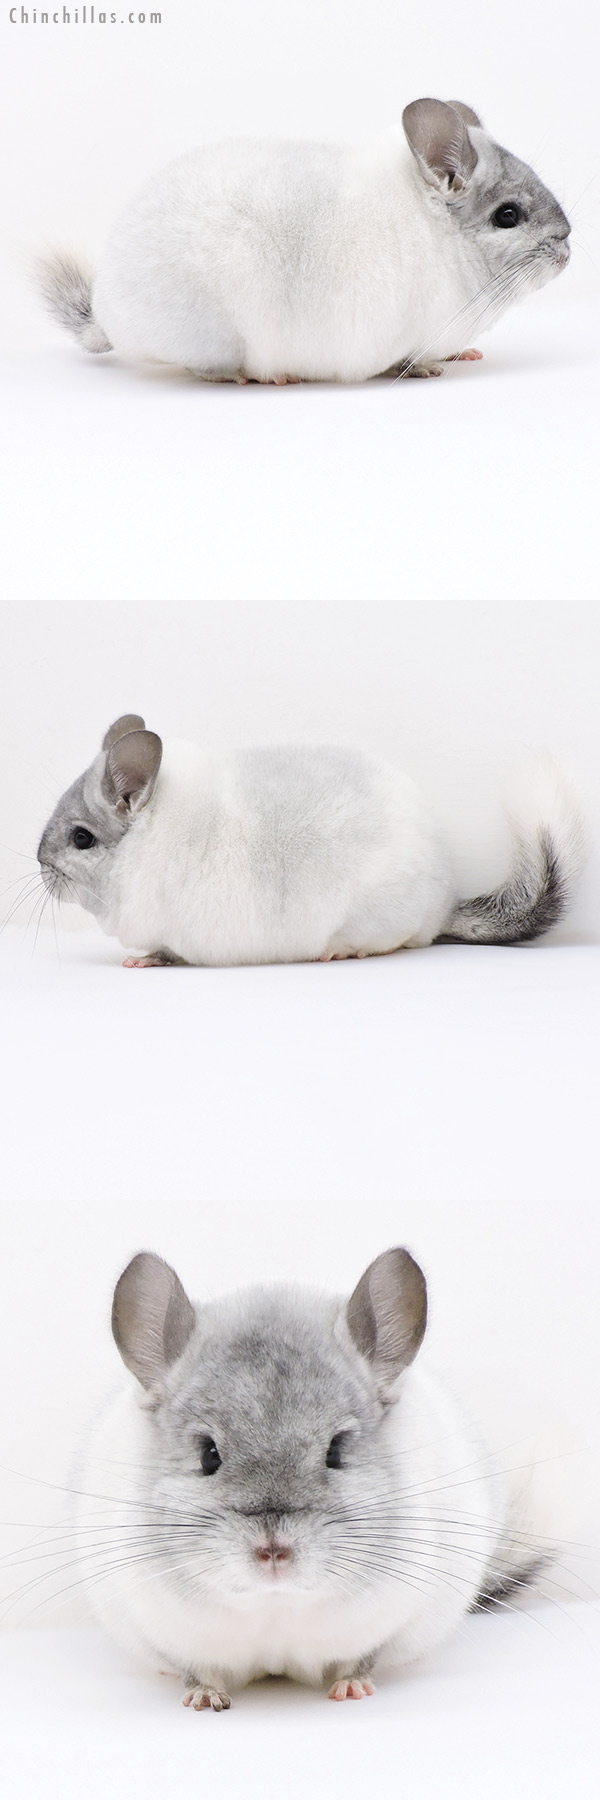 19017 Blocky Herd Improvement Quality White Mosaic Male Chinchilla